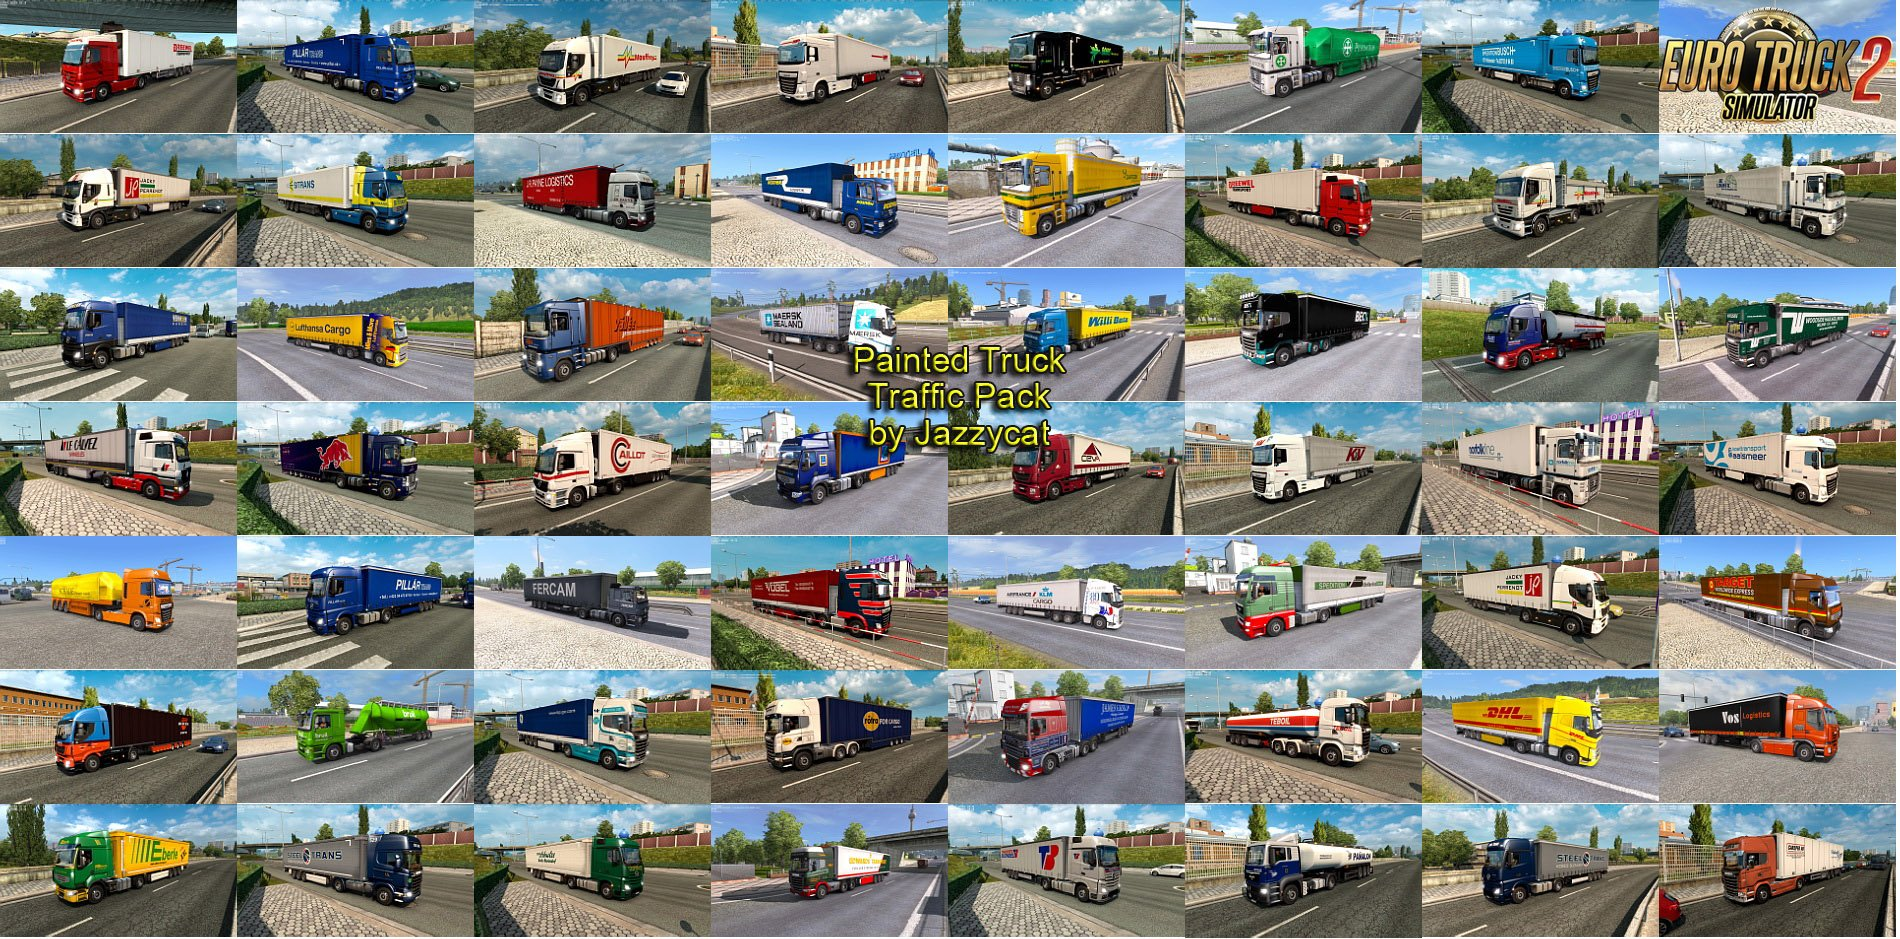 Painted Truck Traffic Pack v3.8 by Jazzycat (1.27.x)